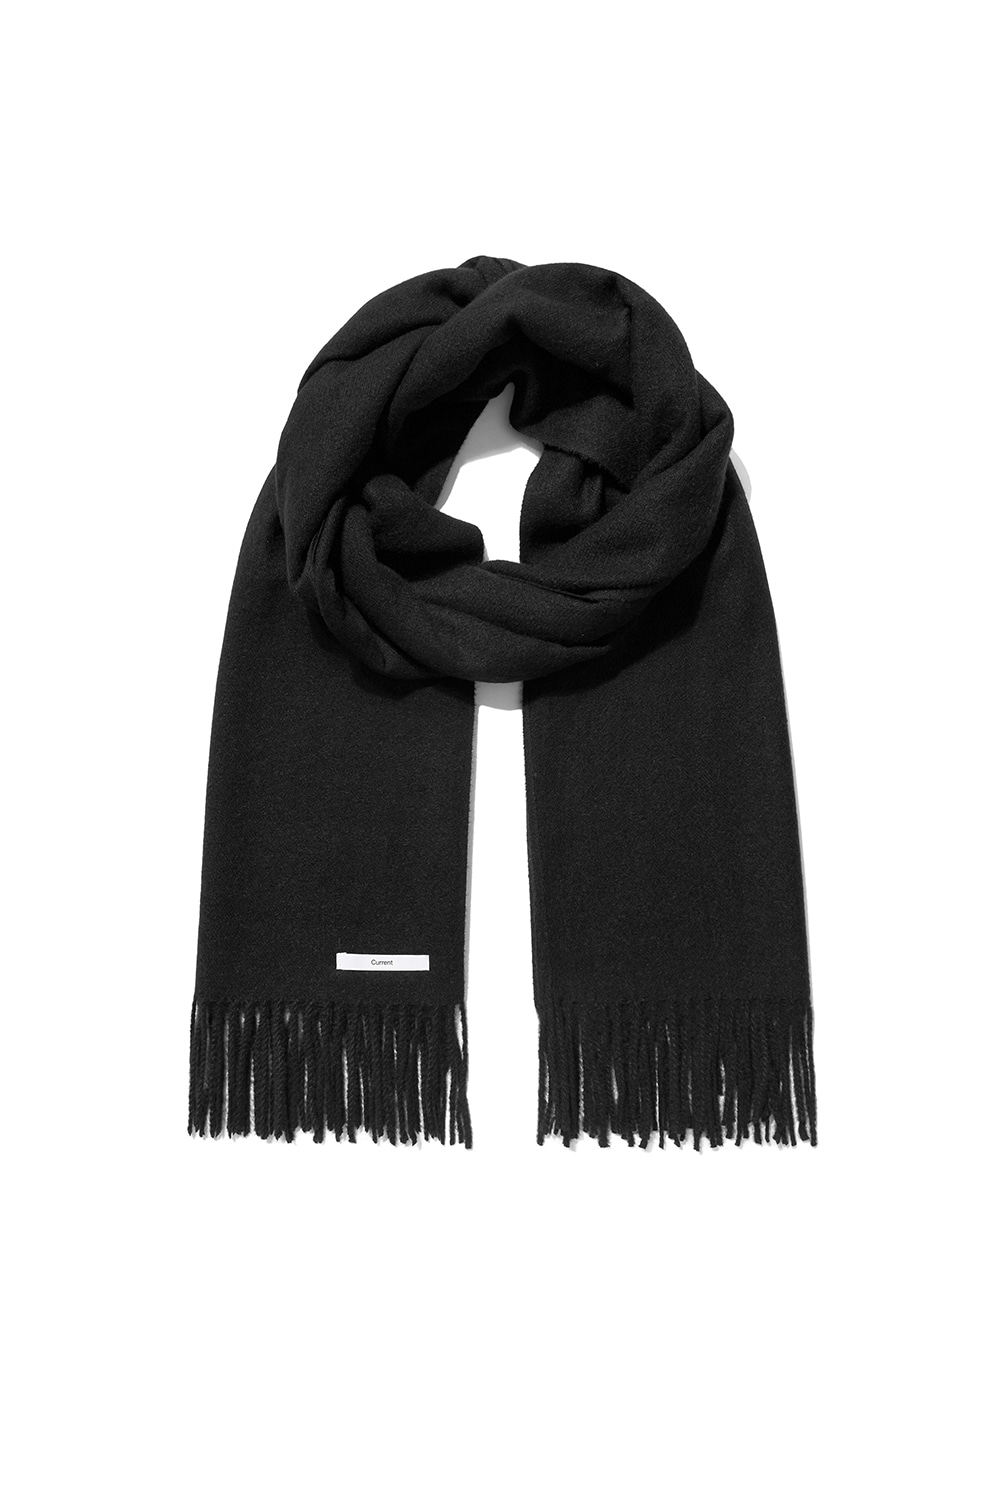 Cashmere Touch Muffler [Black]